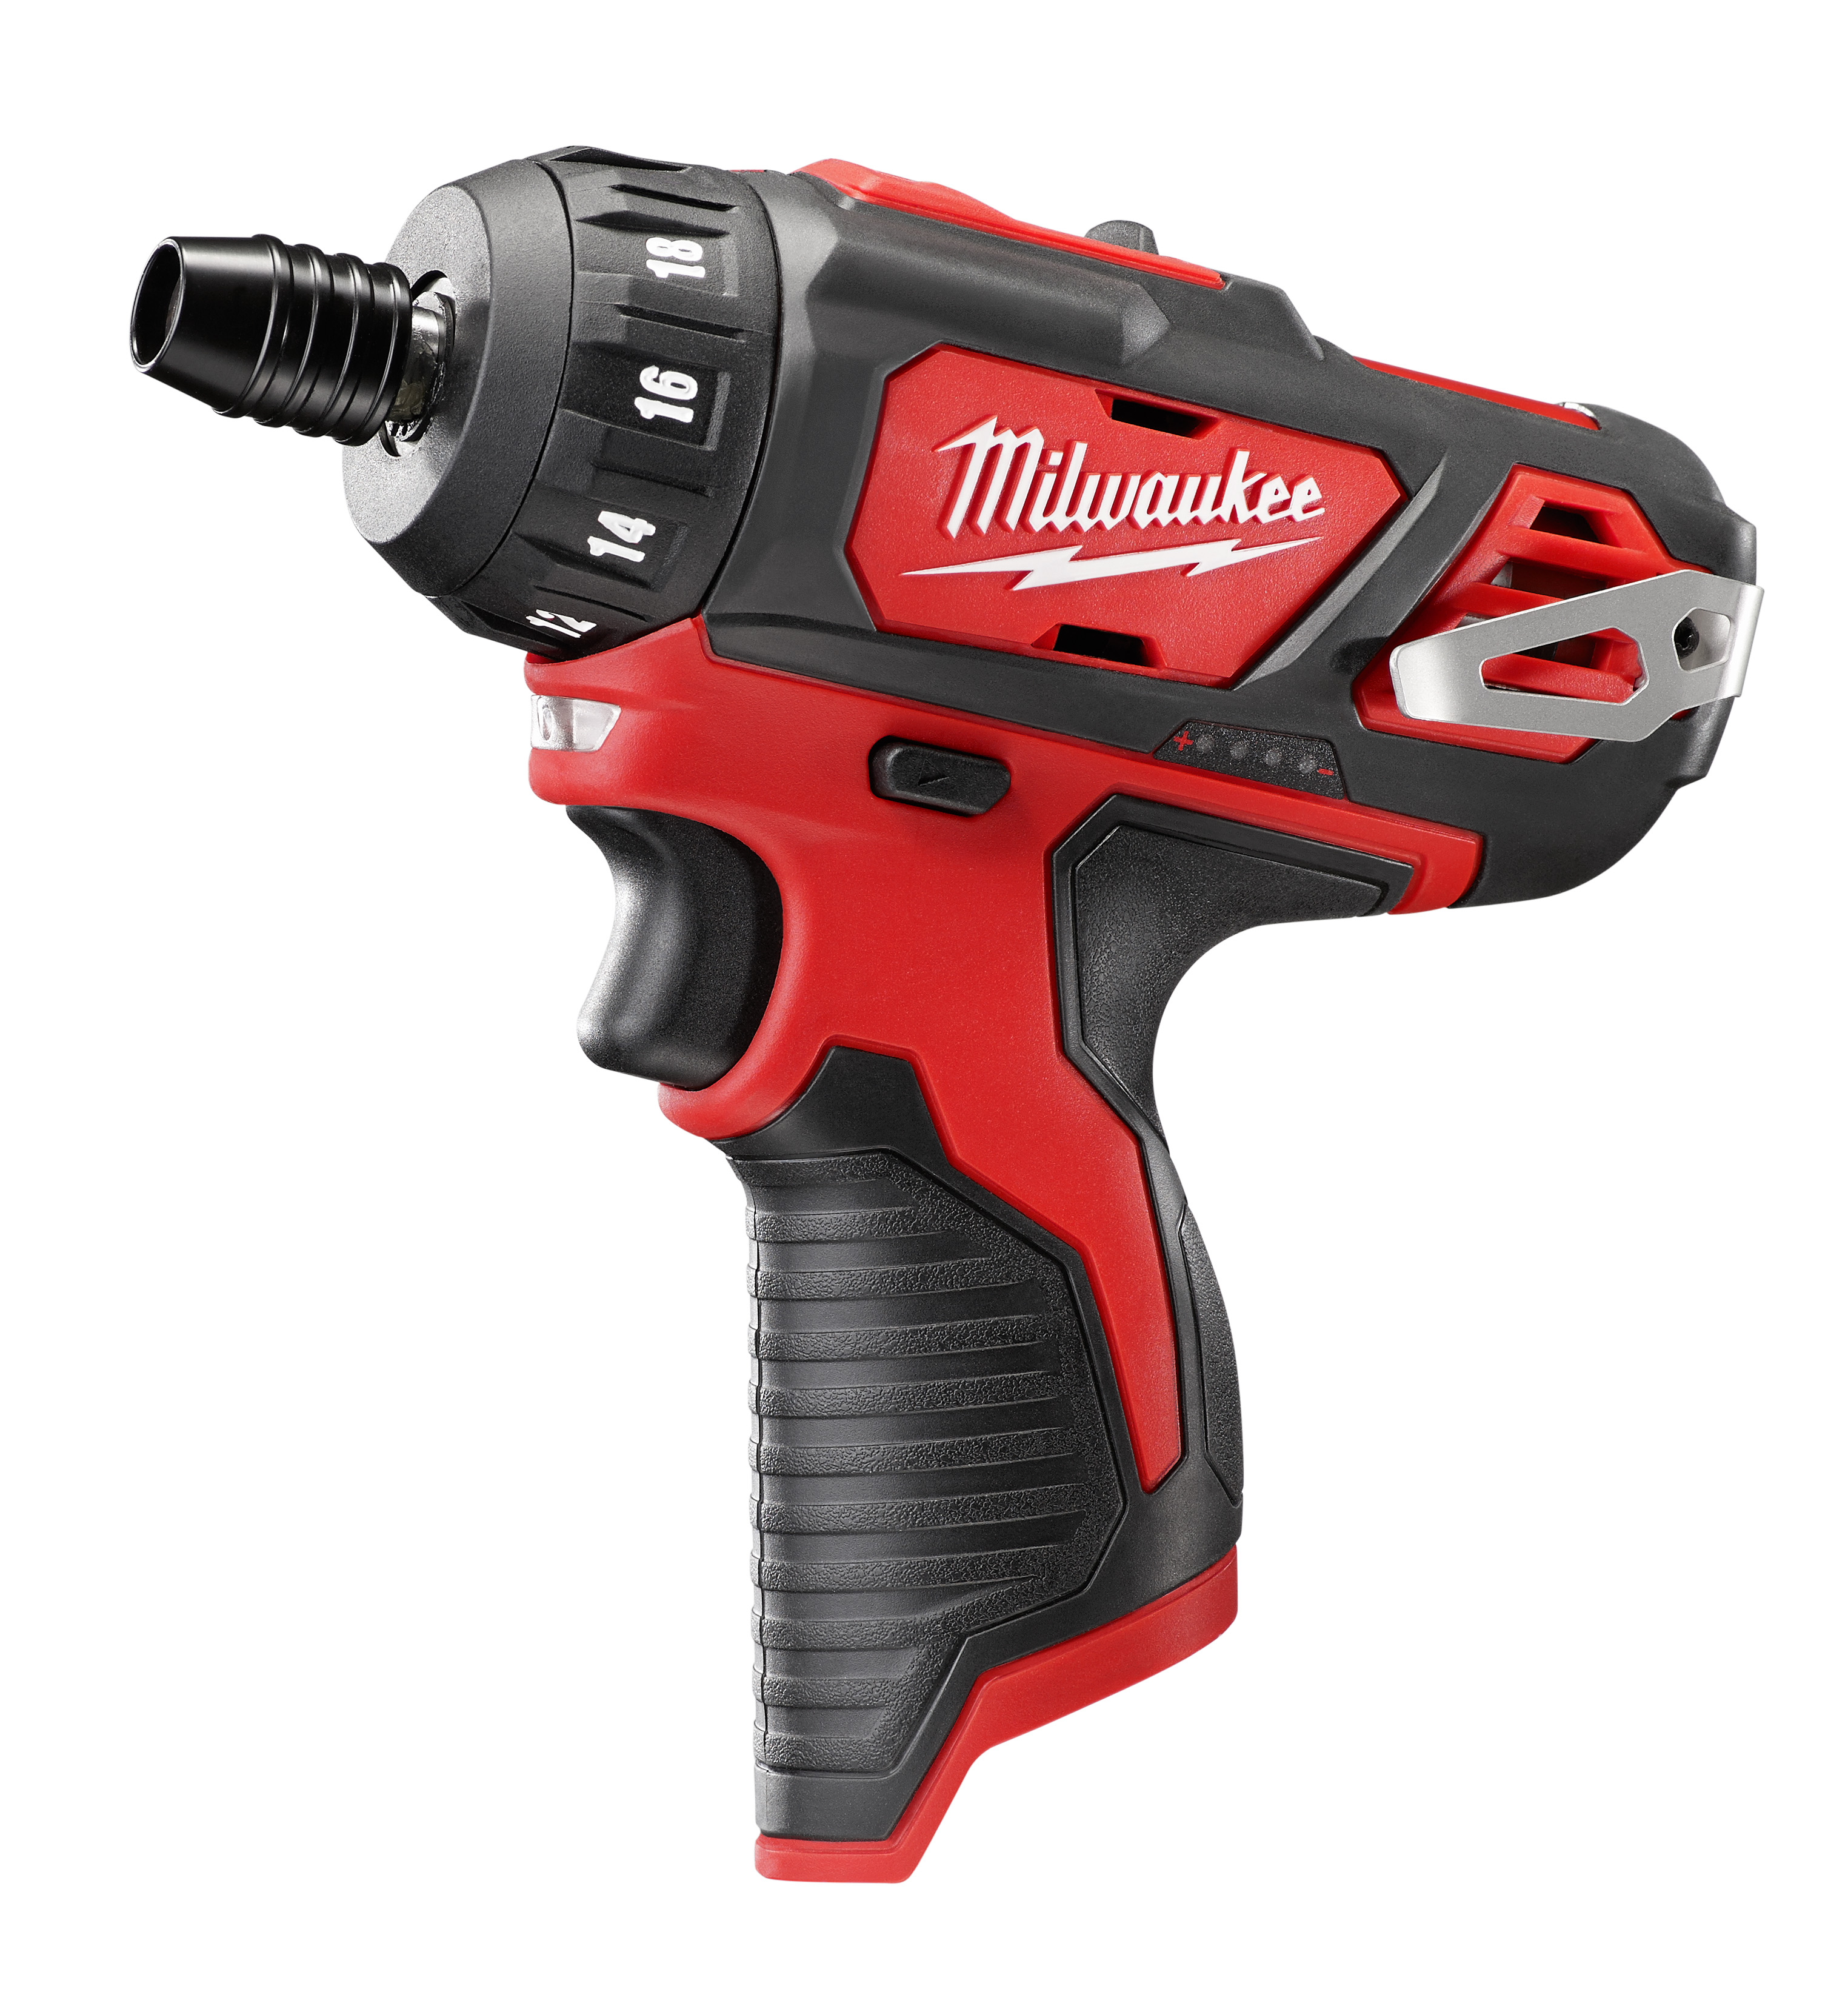 Milwaukee® M12™ 2406-20 Compact Lightweight Cordless Screwdriver, 1/4 in Chuck, 12 VDC, 275 in-lb Torque, Lithium-Ion Battery